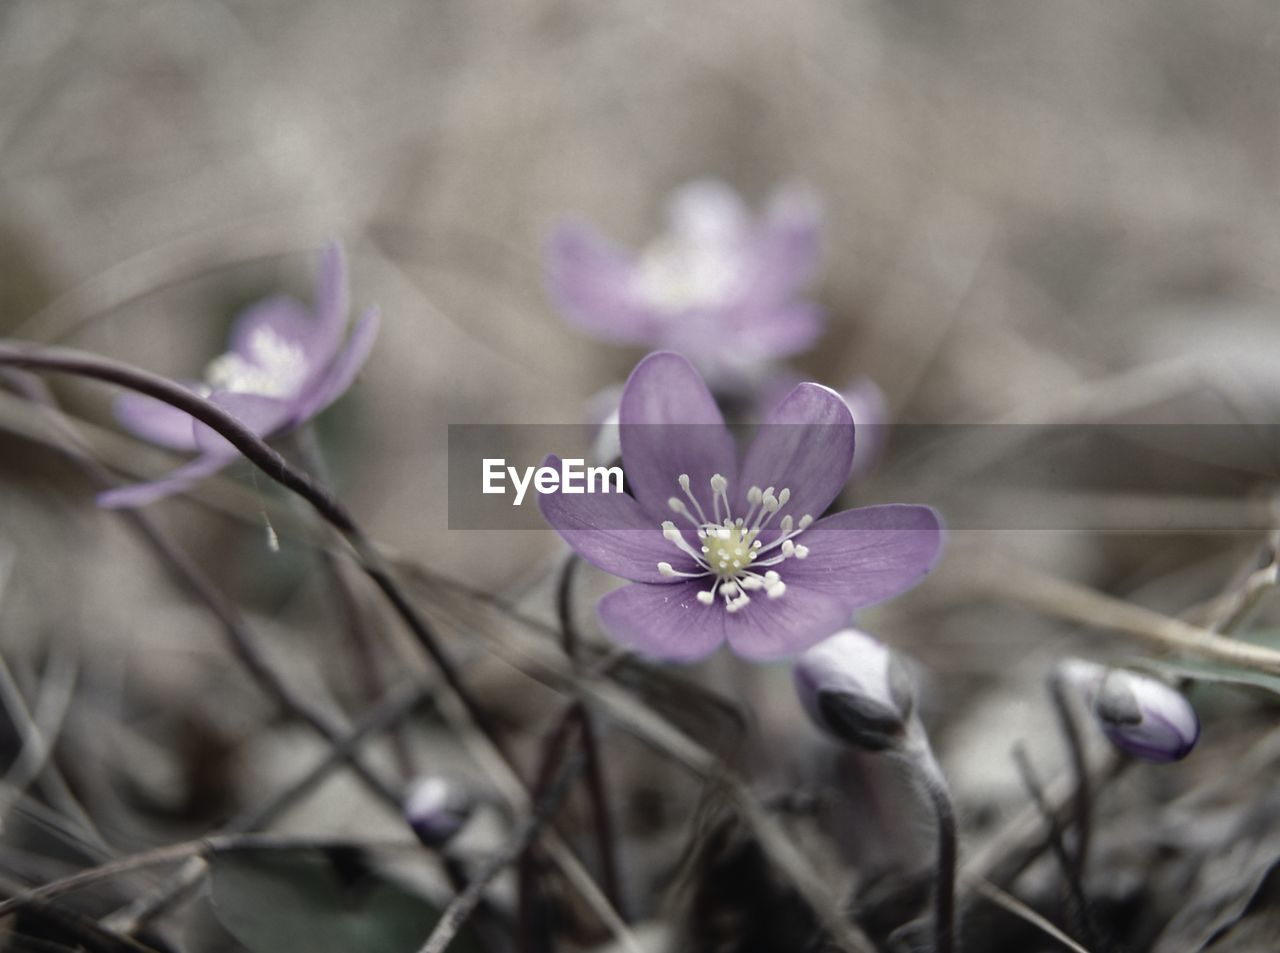 flower, nature, growth, plant, fragility, no people, close-up, petal, beauty in nature, freshness, outdoors, day, flower head, blooming, crocus